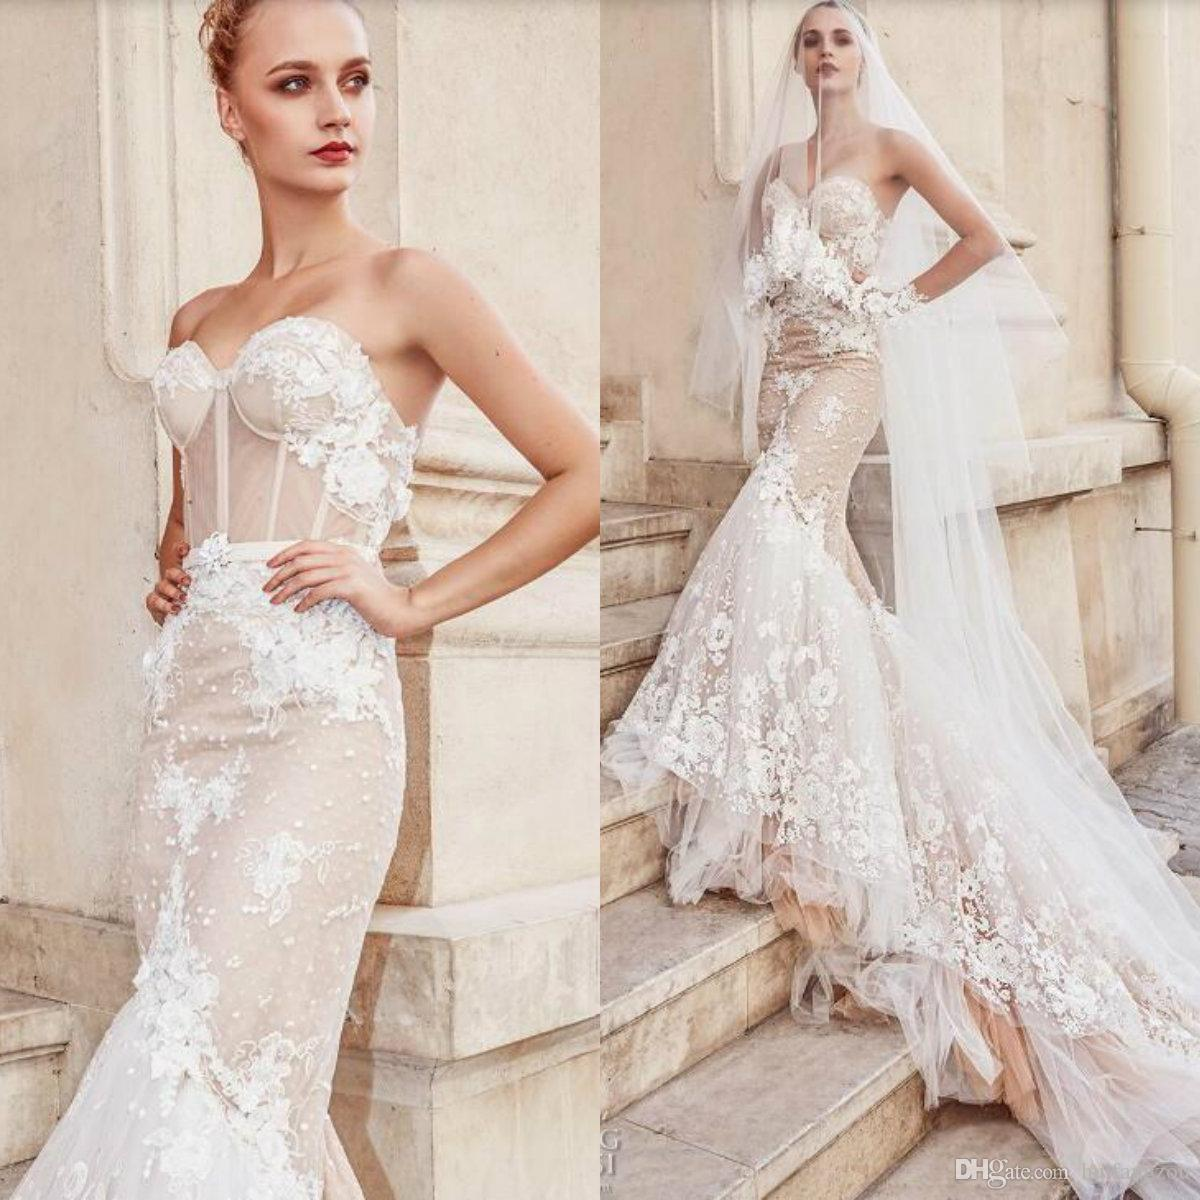 218768504 Discount 2019 Mermaid Wedding Dress Sexy Illusion Bodice Sweetheart Exposed  Boning Bridal Gowns 3D Floral Appliques Backless Wedding Dresses A Line  Wedding ...